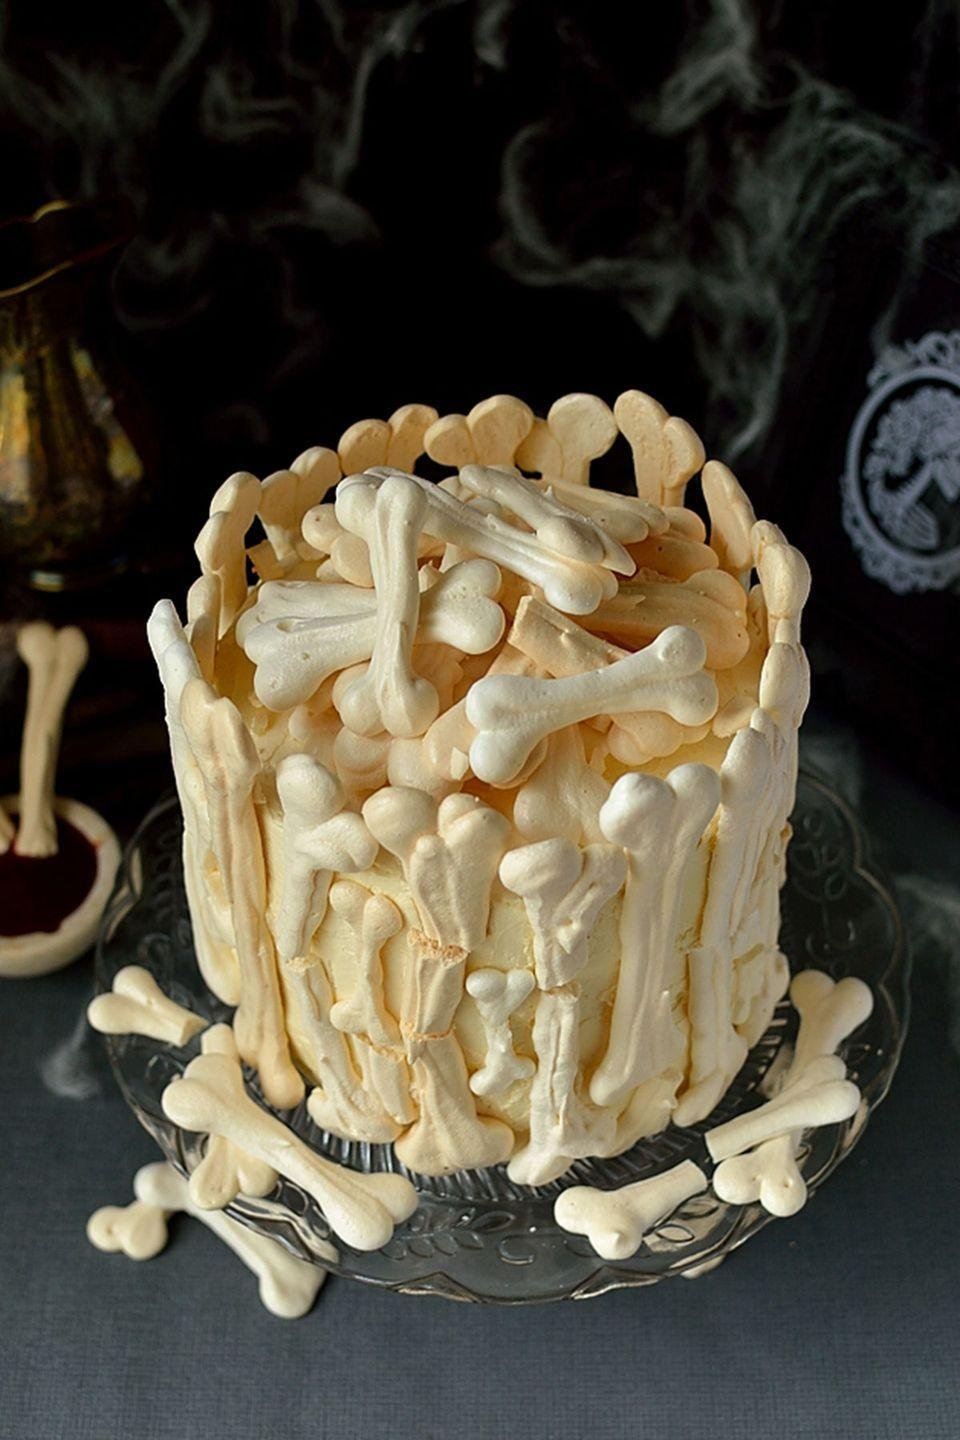 """<p>Your guests will freak when they see this creepy cake. Top the meringue bones with berry coulis """"blood"""" to give them a little extra spook. </p><p><strong>Get the recipe at <a href=""""http://domesticgothess.com/blog/2016/10/05/meringue-bone-palace-halloween-cake/"""" rel=""""nofollow noopener"""" target=""""_blank"""" data-ylk=""""slk:Domestic Gothess"""" class=""""link rapid-noclick-resp"""">Domestic Gothess</a>.</strong> </p>"""